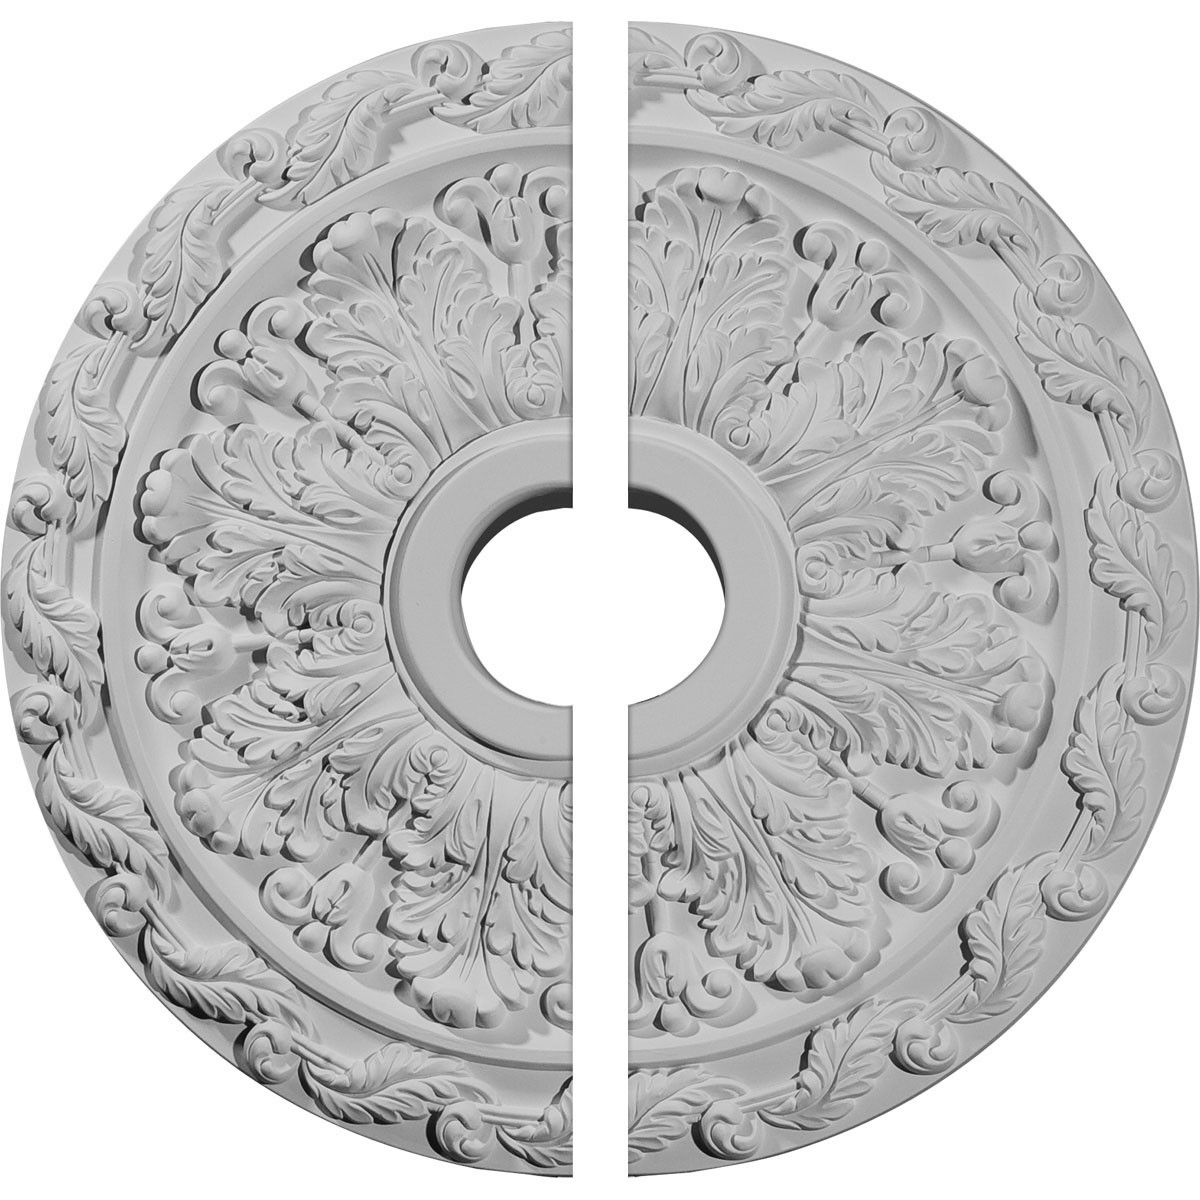 """EM-CM19SP2 - 19 7/8""""OD x 3 5/8""""ID x 1 1/4""""P Spring Leaf Ceiling Medallion, Two Piece (Fits Canopies up to 5 5/8"""")"""